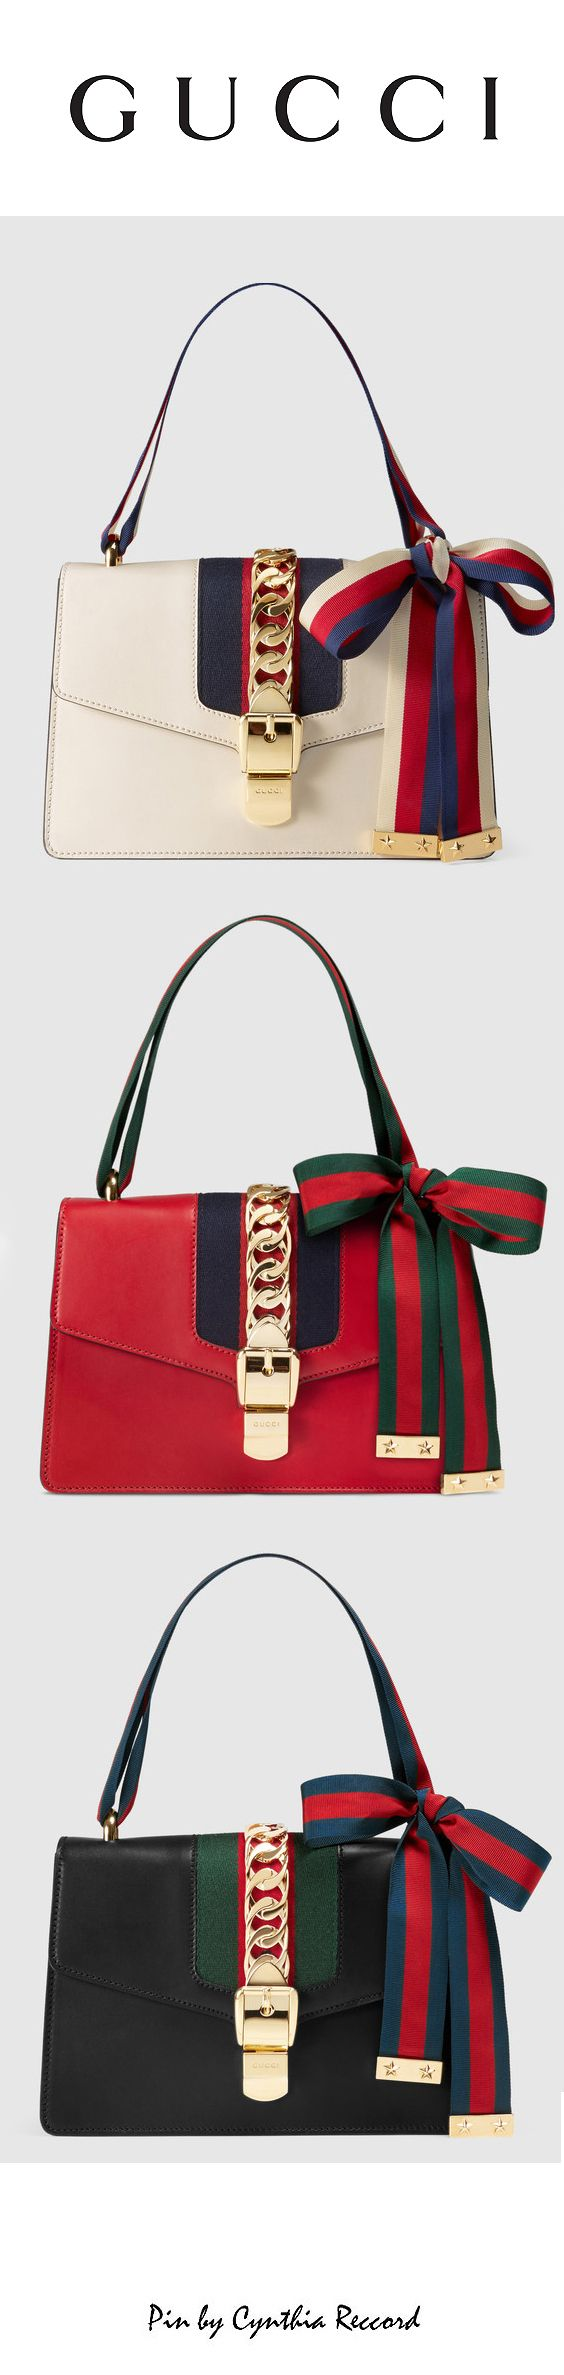 Gucci | Sylvie Leather Shoulder Bag with two interchangeable straps | SS 2016 Collection | cynthia reccord